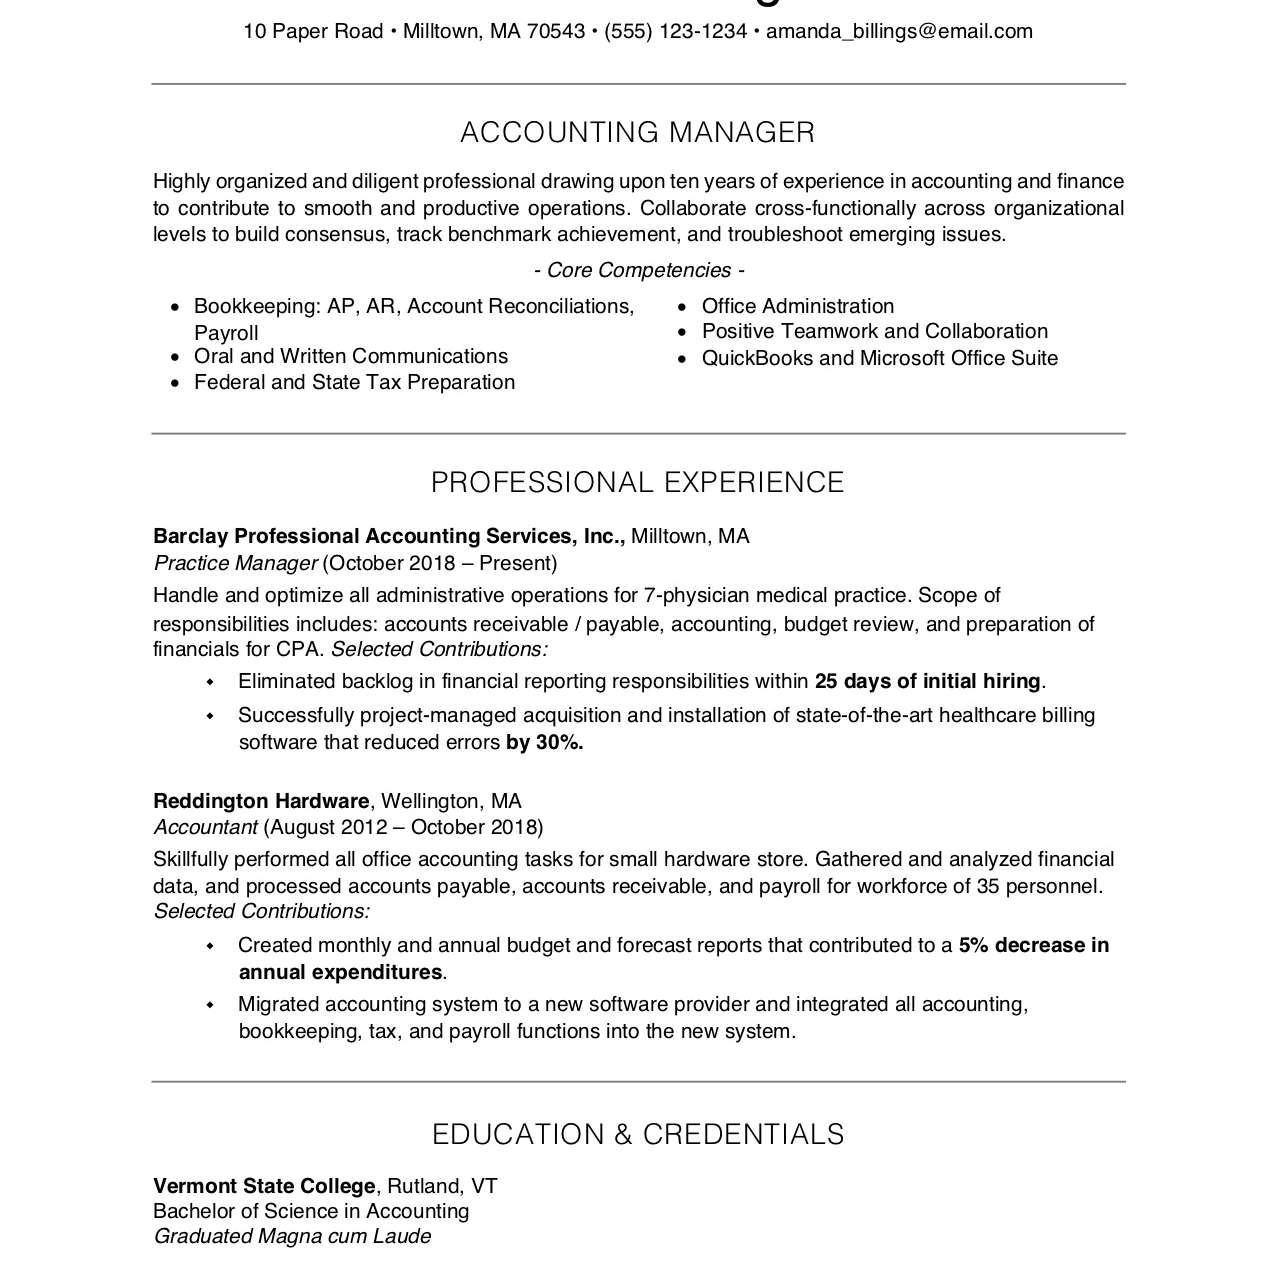 free professional resume examples and writing tips template for experienced 2063596res1 Resume Resume Template For Experienced Professional